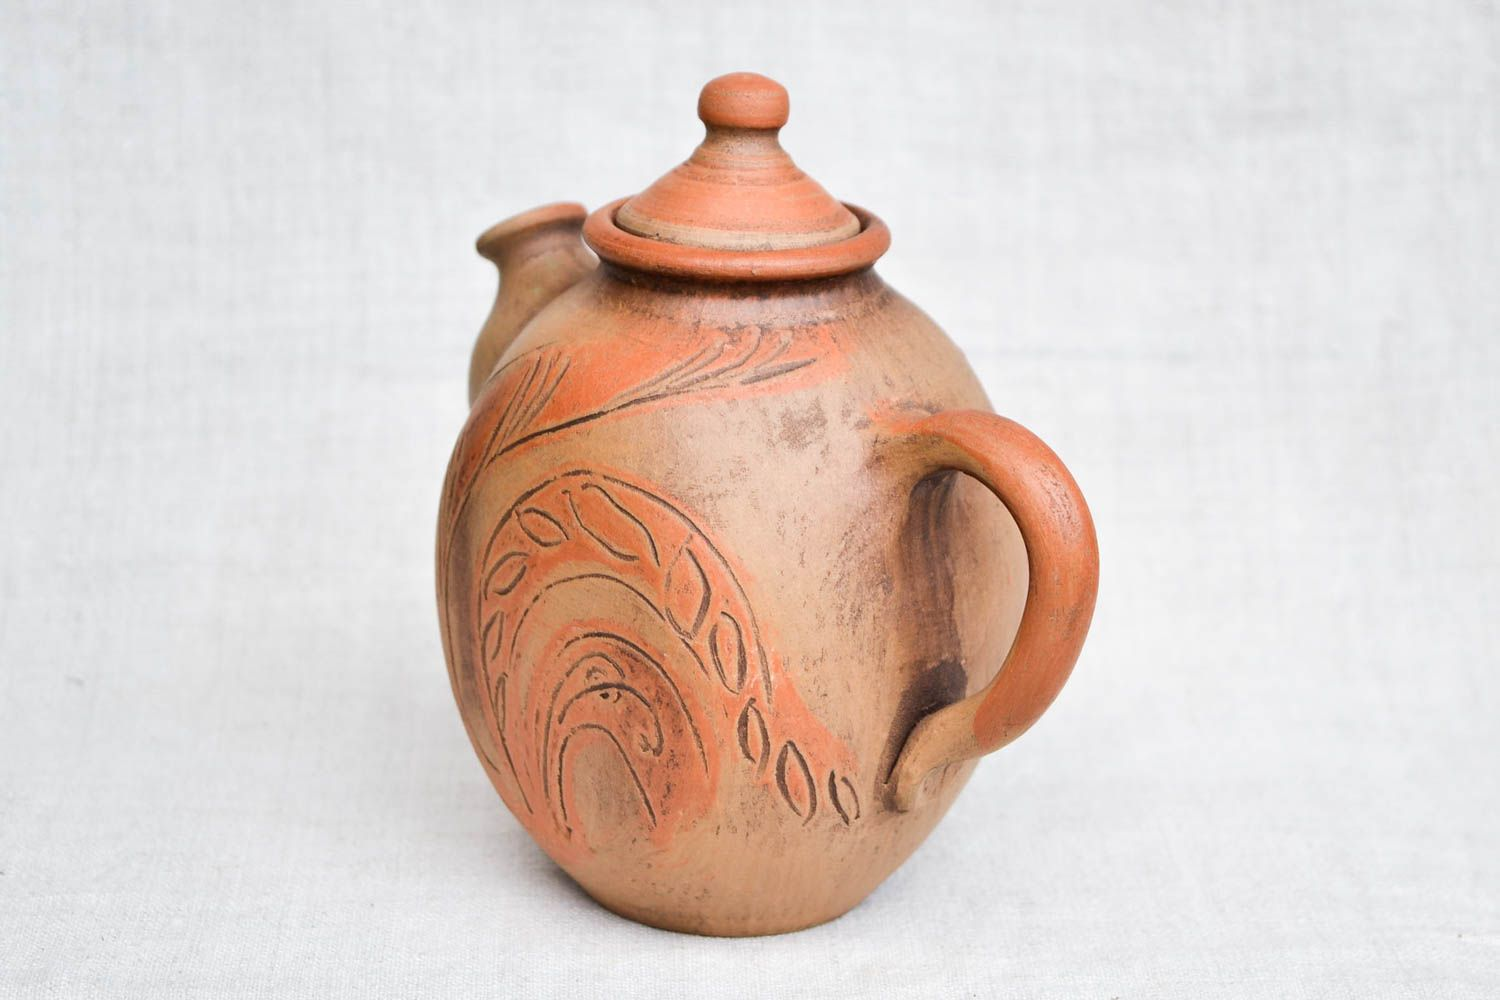 tea pots and coffee pots Handmade pottery clay teapot ceramic teapot clay tableware eco friendly dishes - MADEheart.com